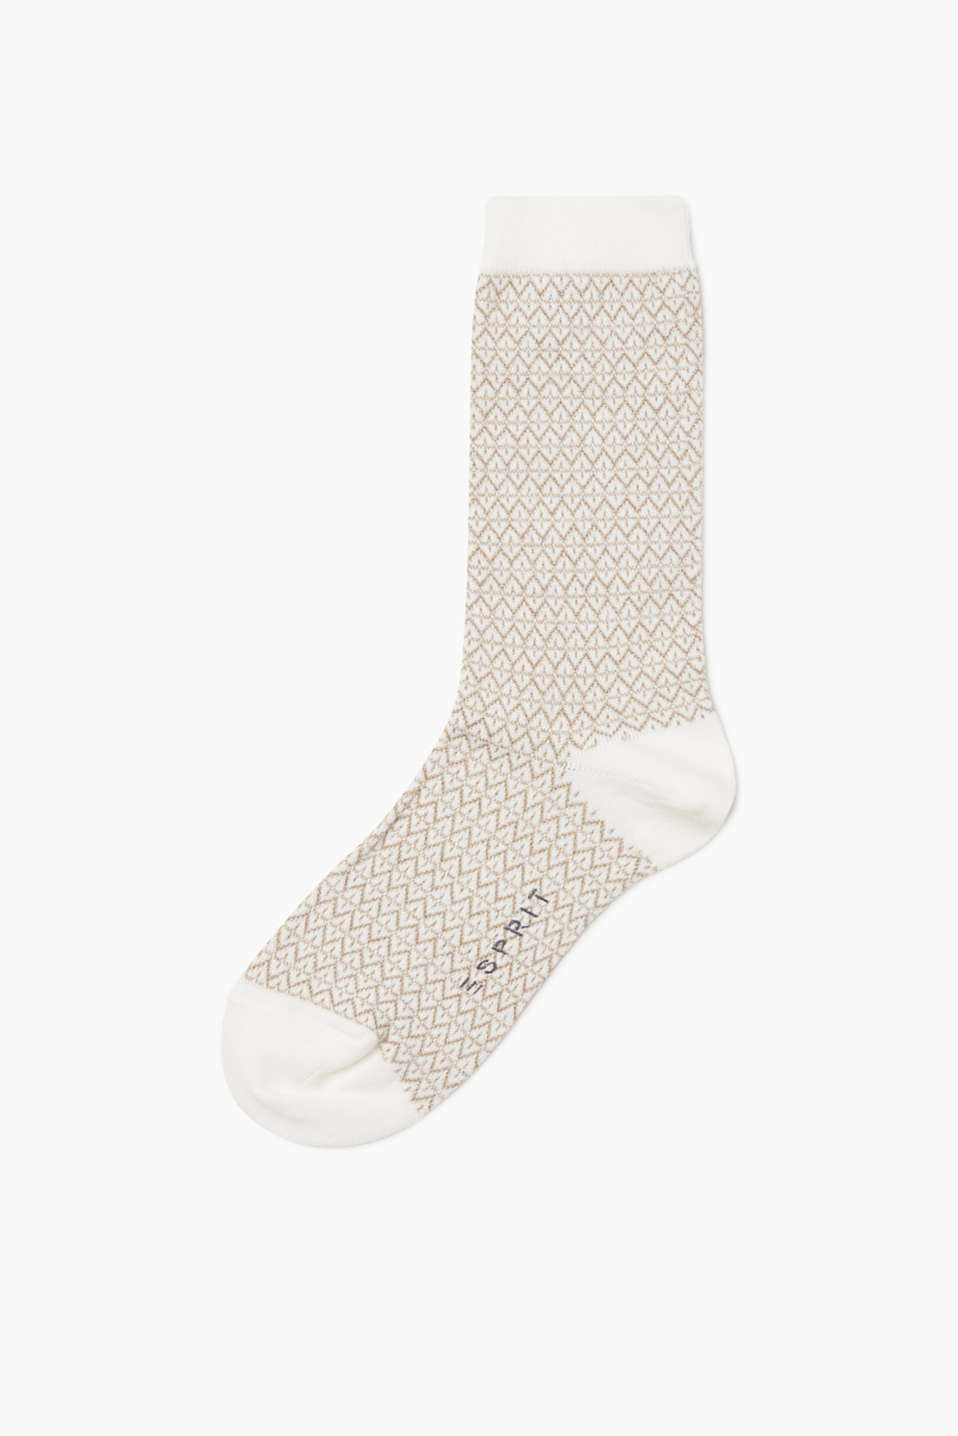 These socks with a percentage of wool are sure to turn heads with their shimmering lurex pattern